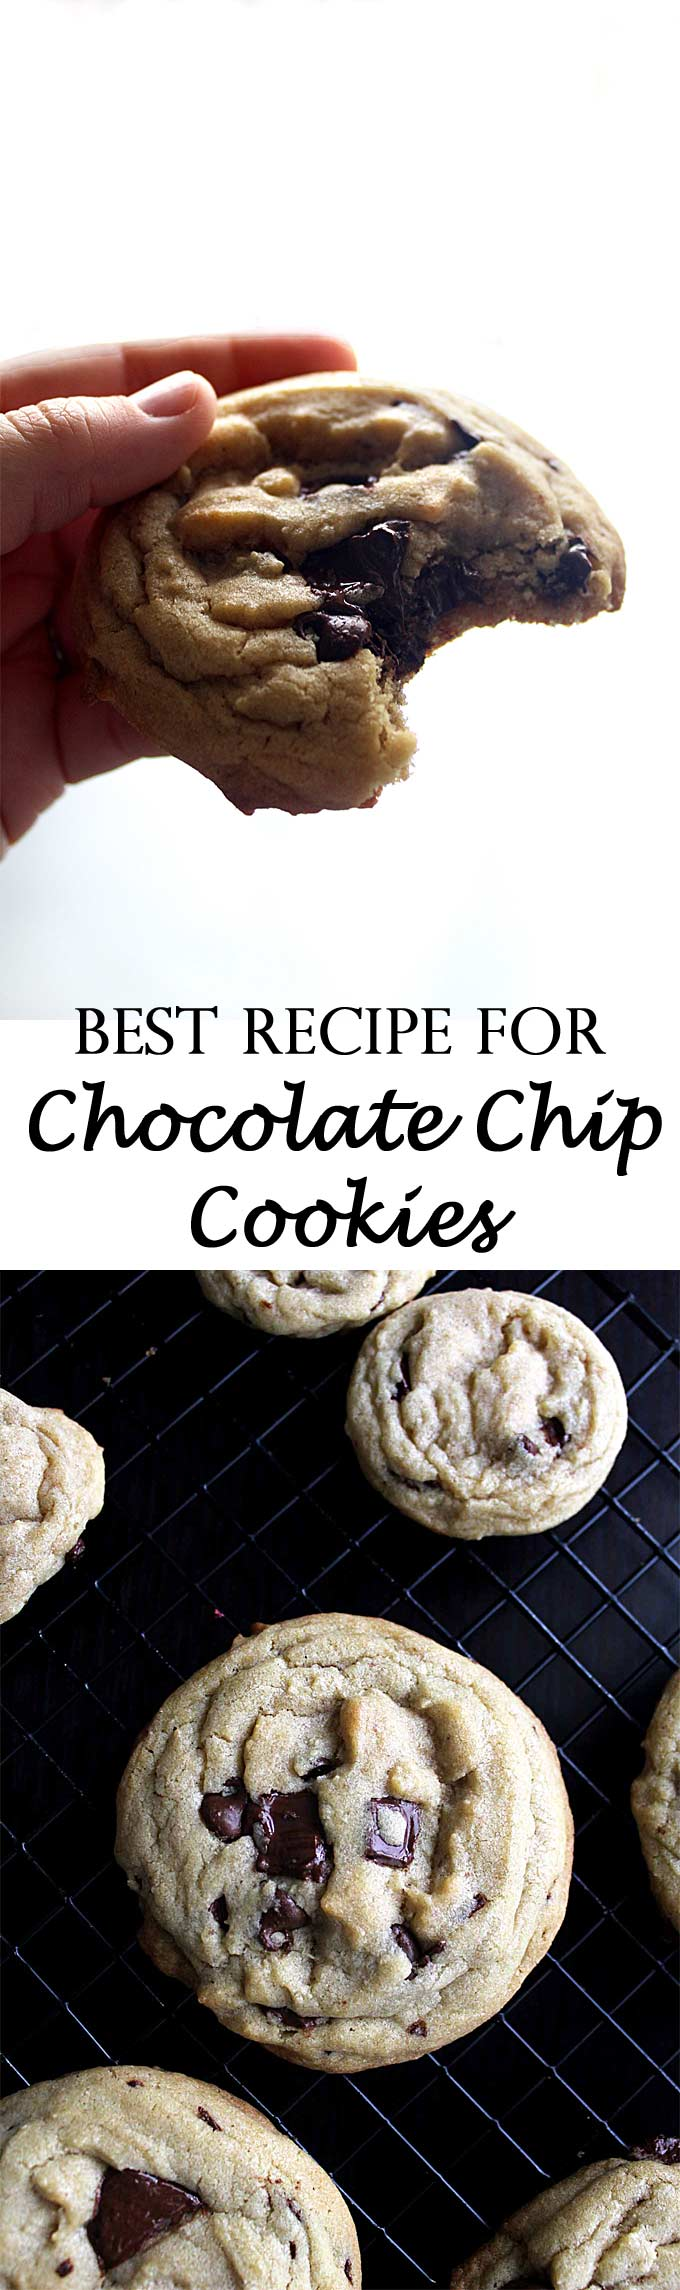 The Best Recipe for Chocolate Chip Cookies | Favorite Cookies | Best Chocolate | Soft & Chewy